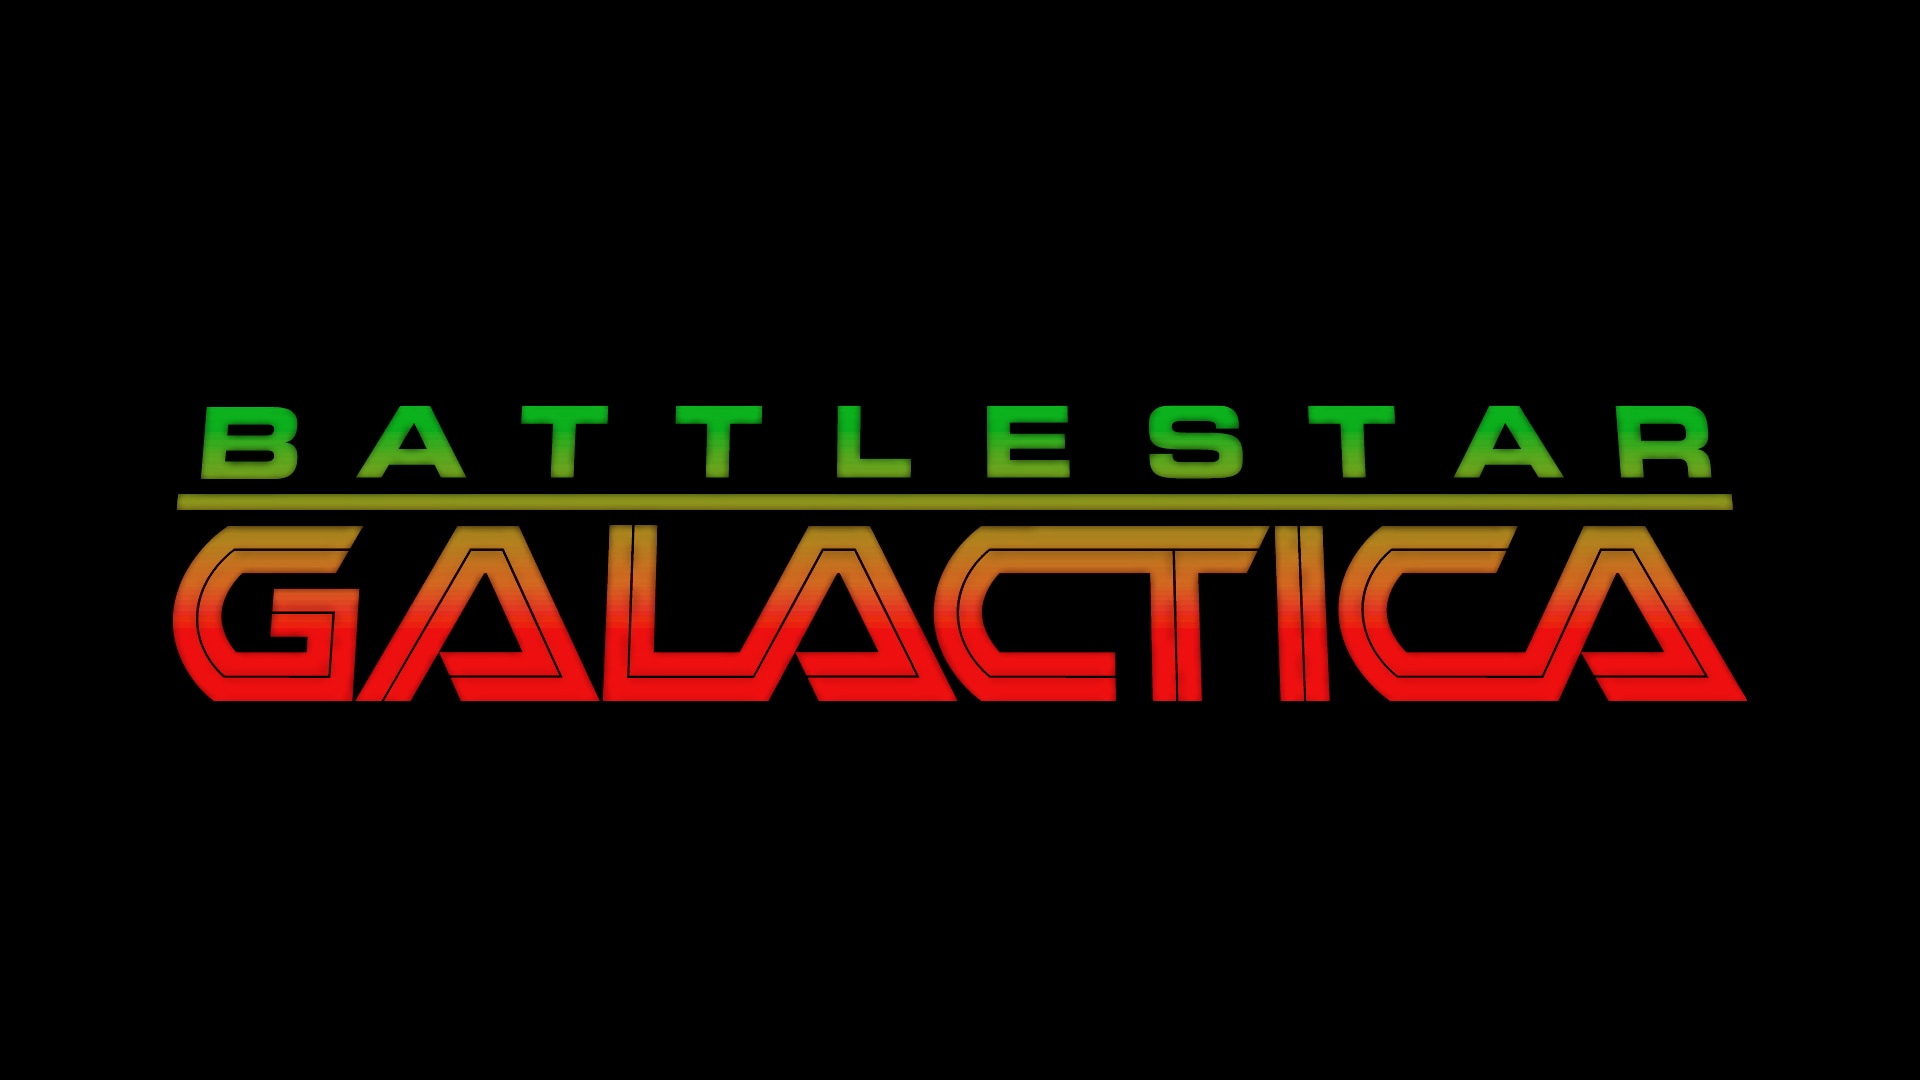 Battlestar Galactica (1978) on FREECABLE TV